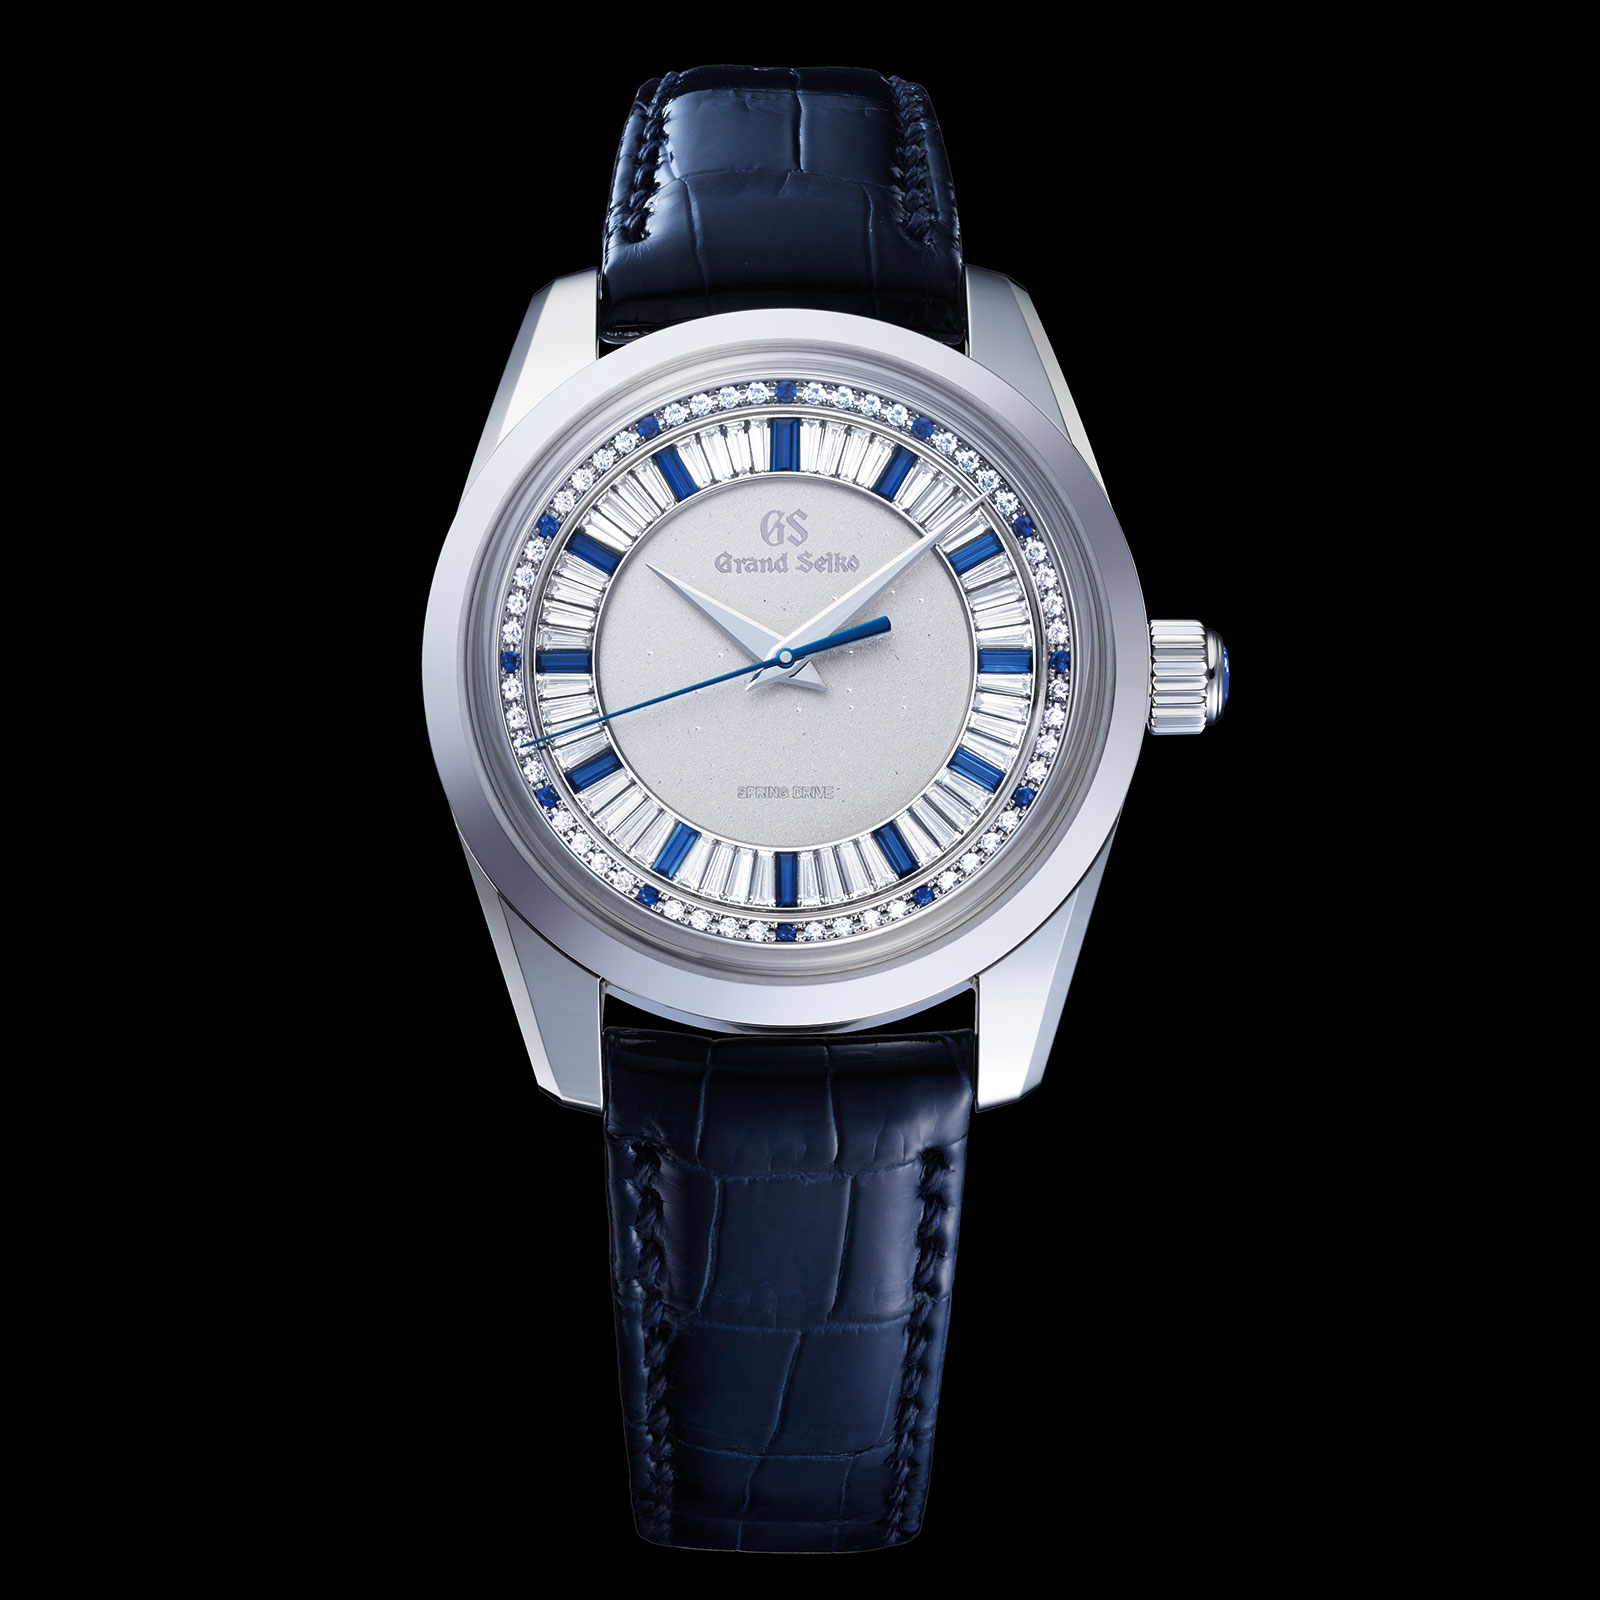 Frontal del Grand Seiko Masterpiece Collection Spring Drive 8 Days Jewelry Watch SBGD205